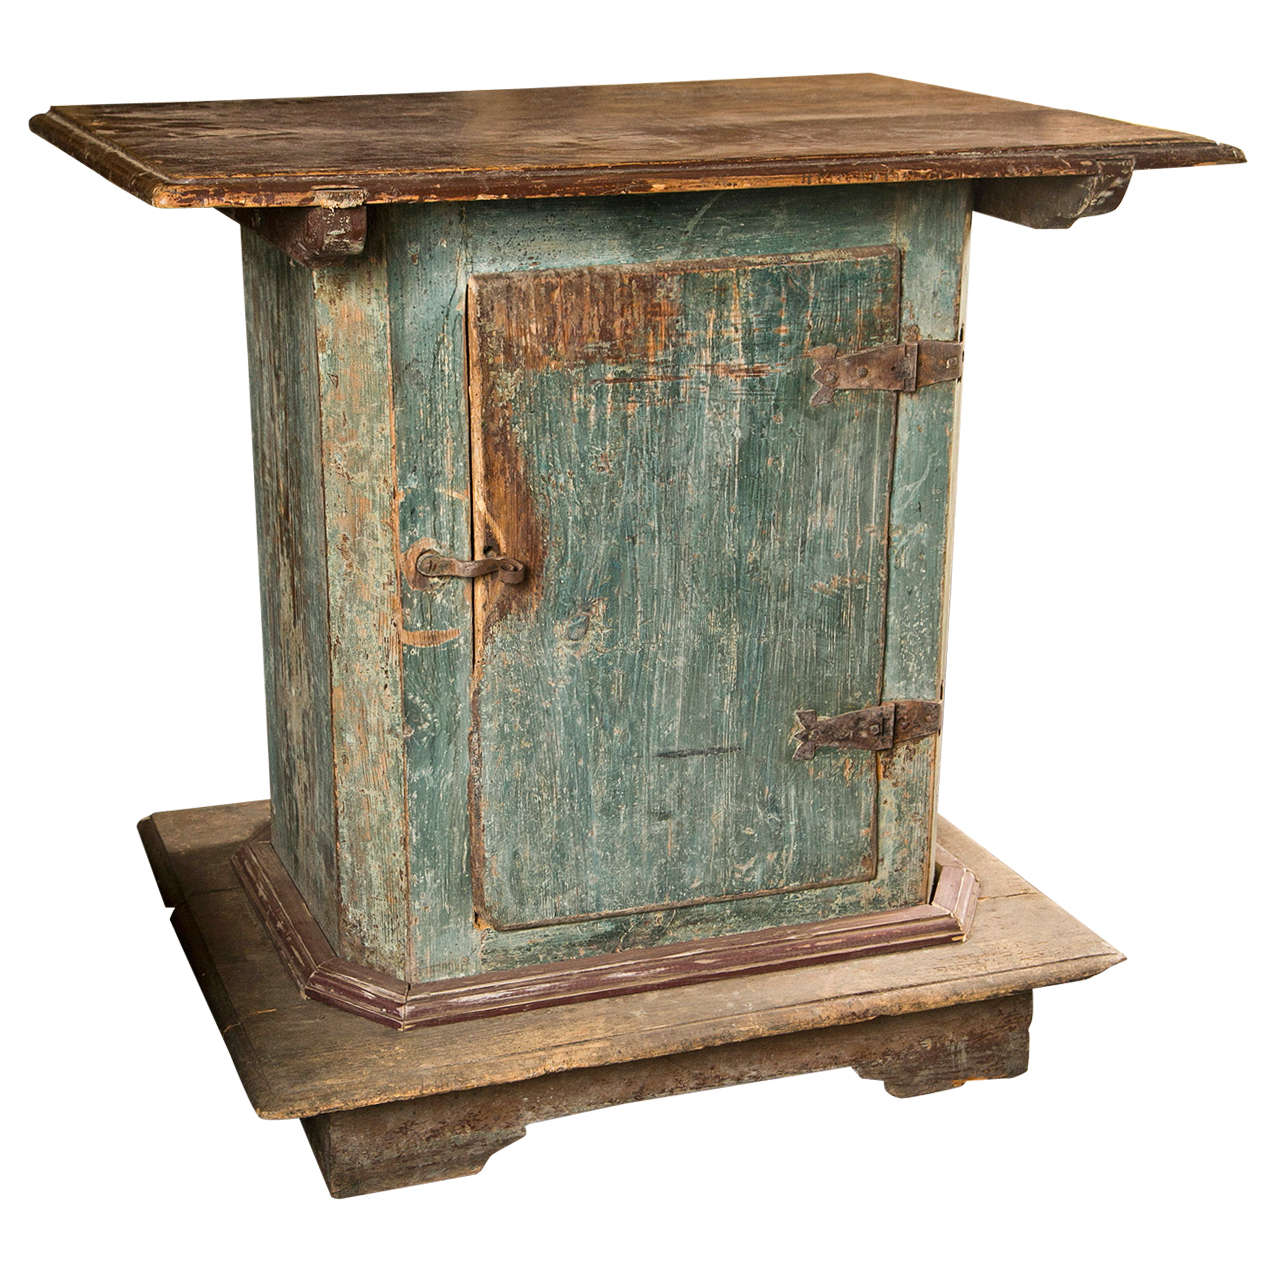 Swedish Painted Pedestal Cabinet with One Door in Original Paint Finish, c. 1780 1